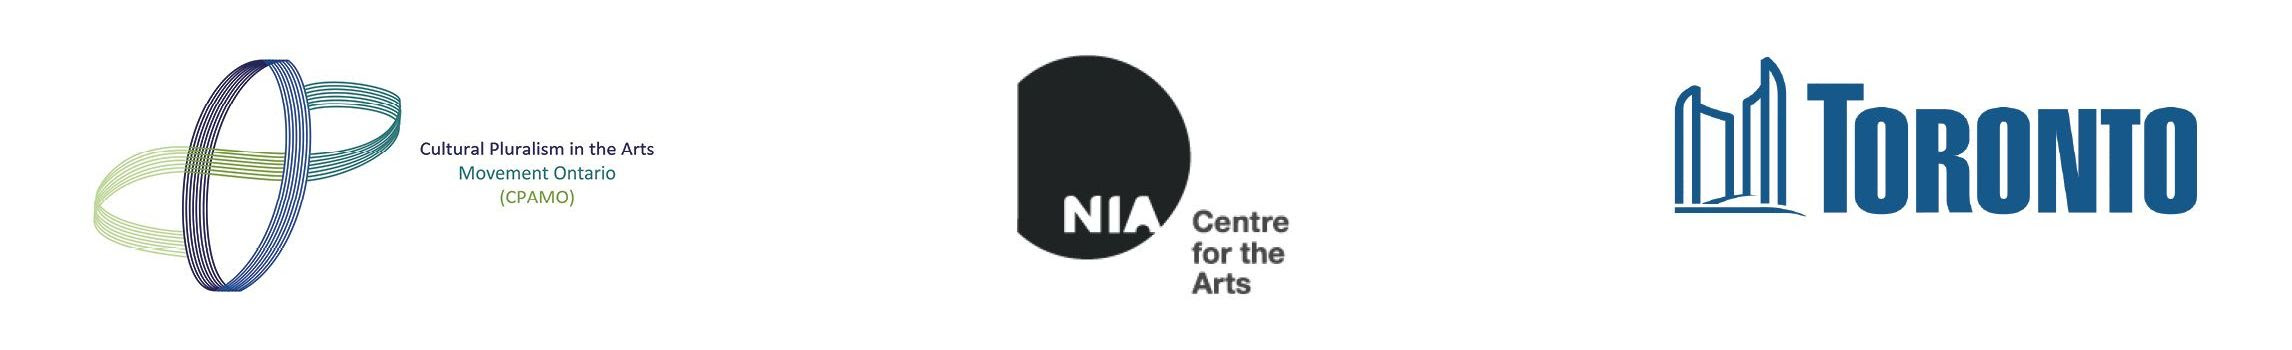 Logos of CPAMO, NIA Center for the Arts and the City of Toronto